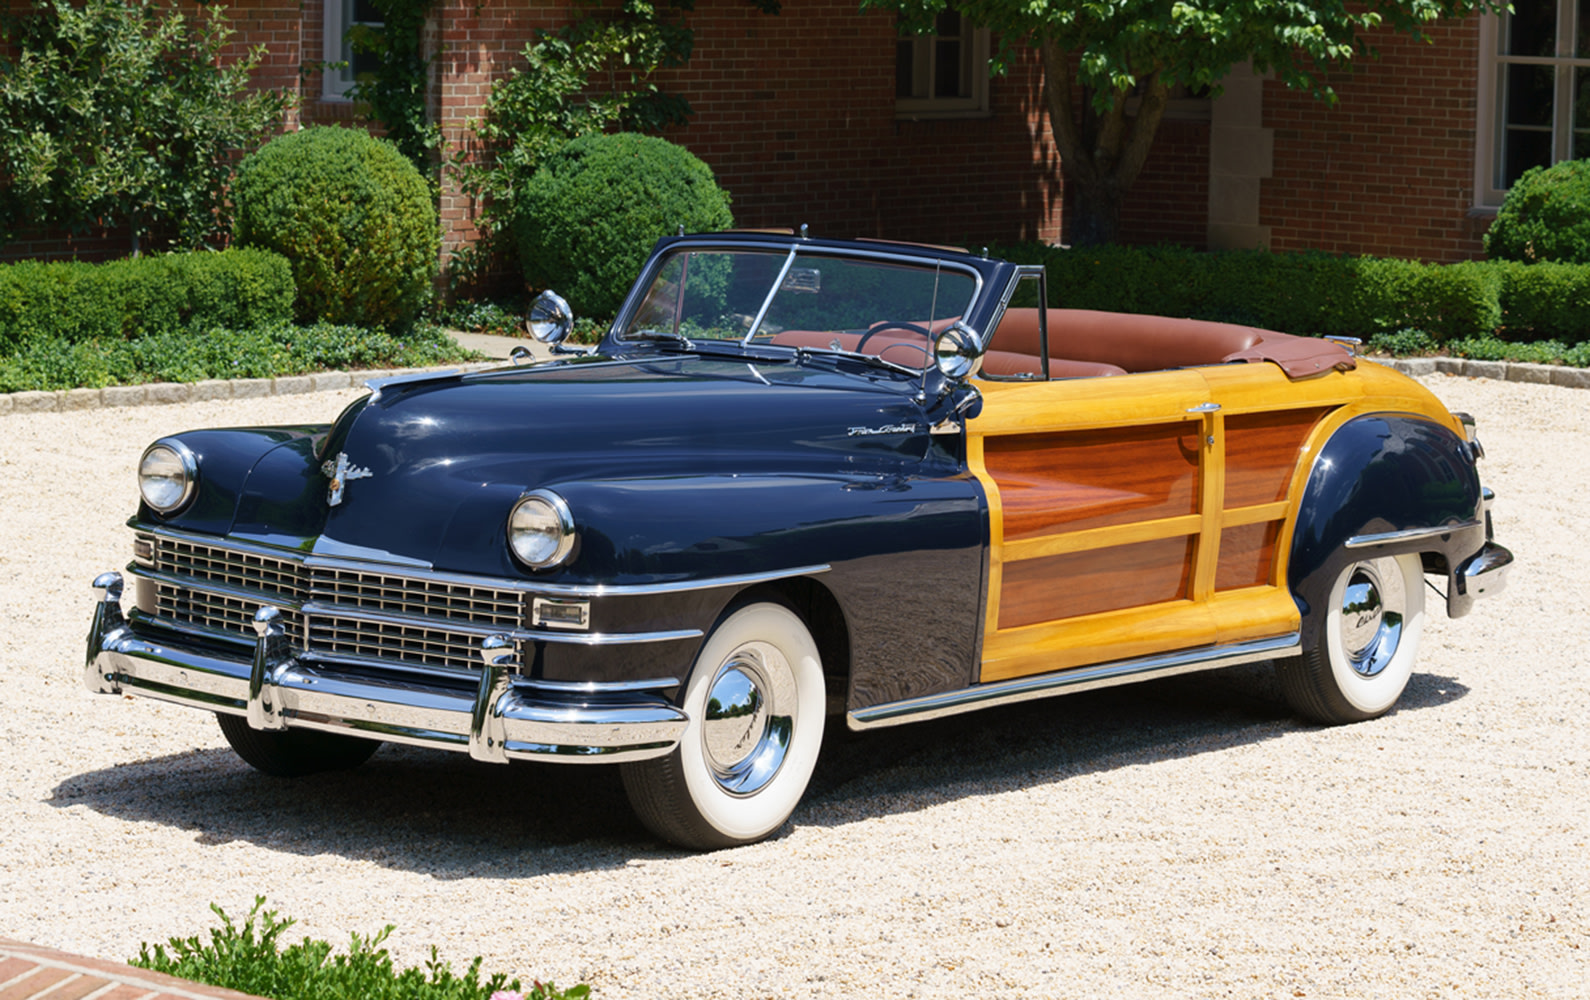 1948 Chrysler Town and Country Convertible (1)